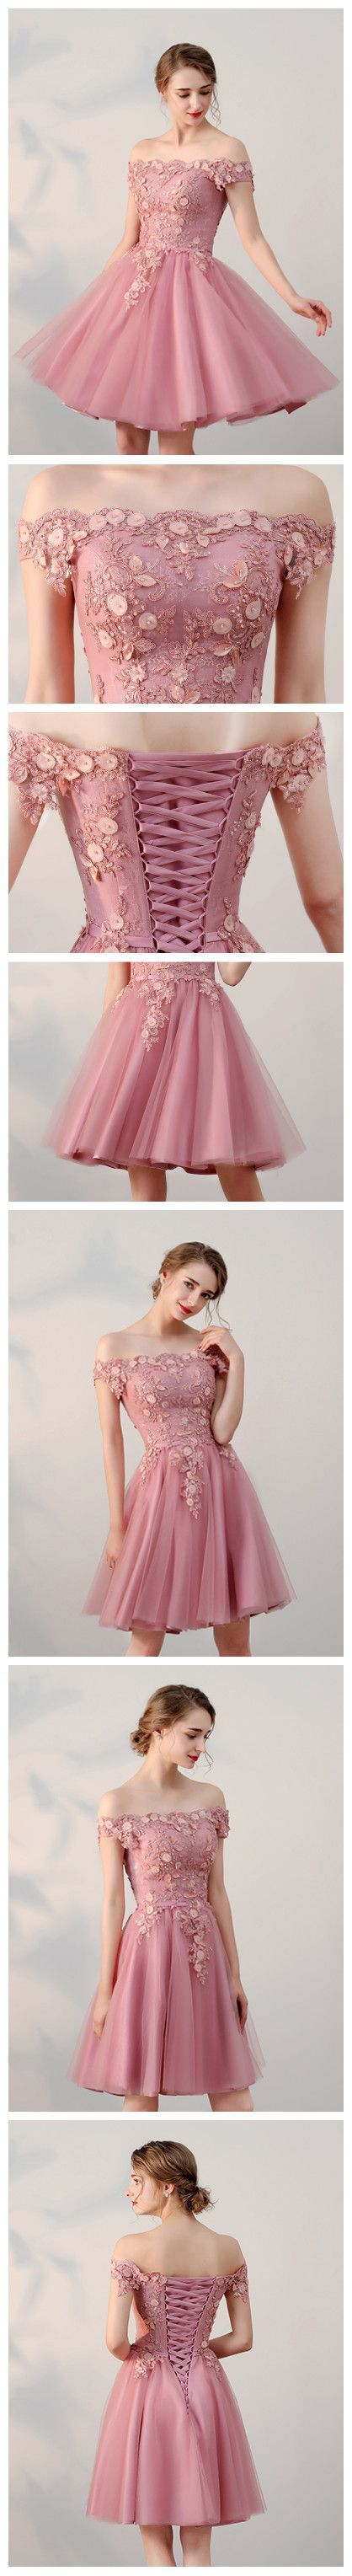 Copy of CHIC A-LINE OFF-THE-SHOULDER TULLE PINK CHARMING SHORT PROM DRESS